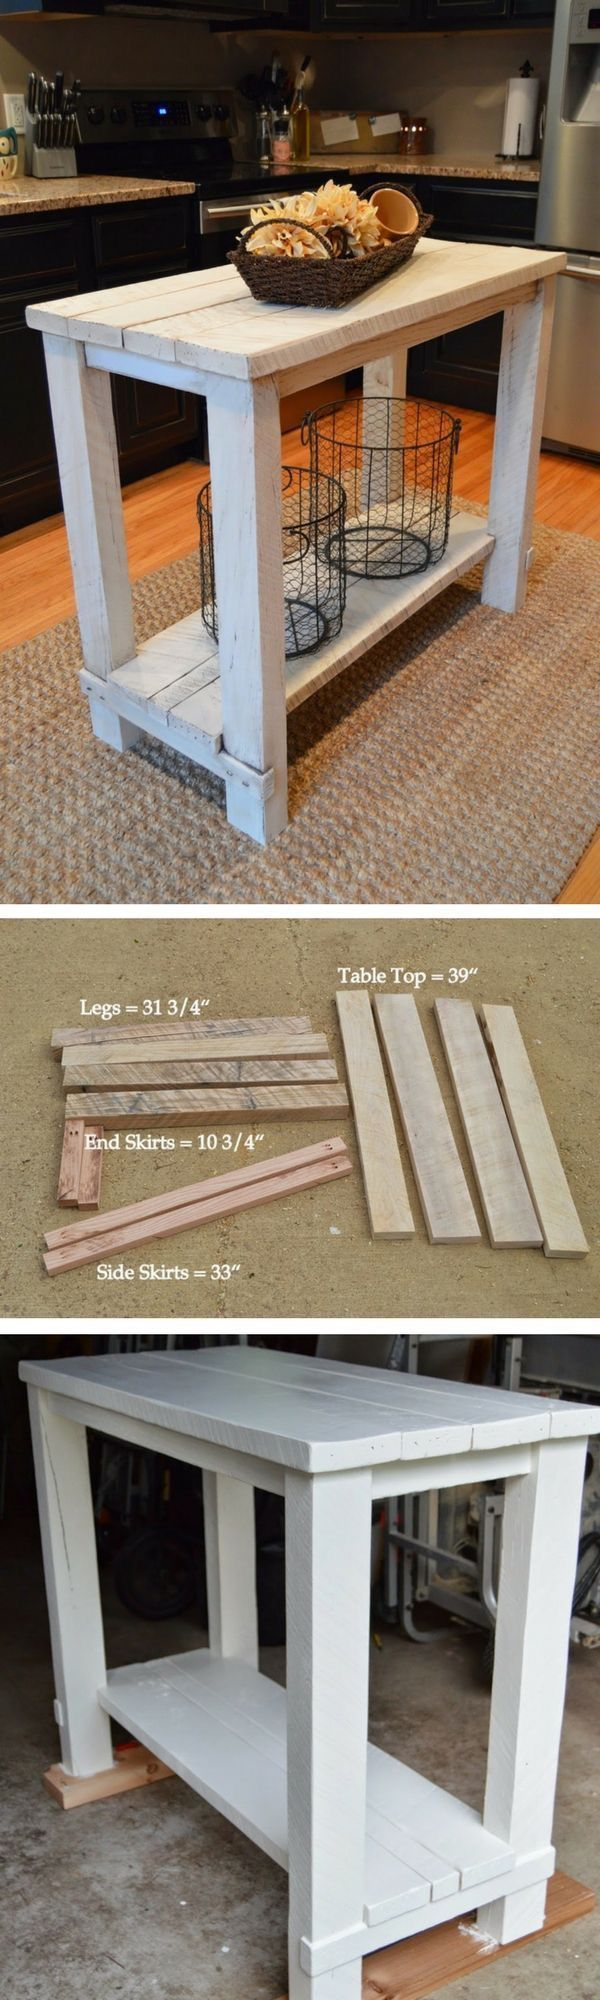 Best Diy Kitchen Island Table Desk Quick And Simple Ad 400 x 300